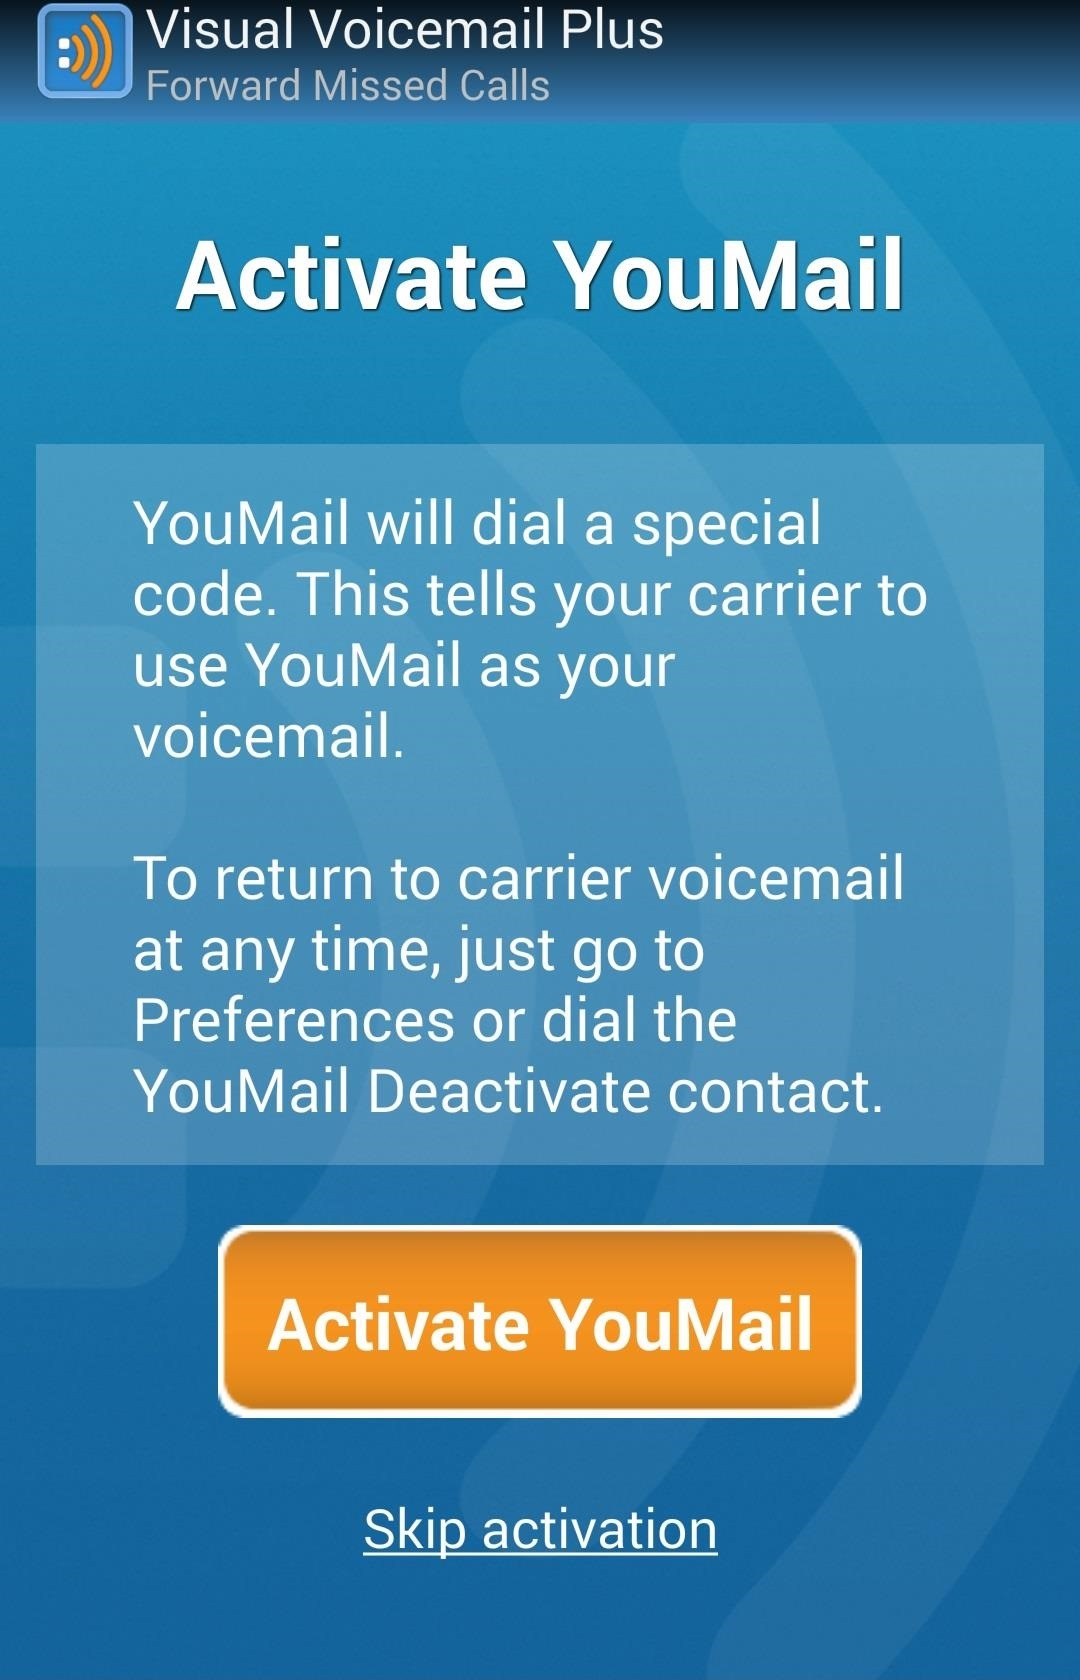 How to give your friends custom voicemail greetings unwanted its as easy as dialing your voicemail and entering the youmail phone number youre issued as your voicemail forwarding number kristyandbryce Images